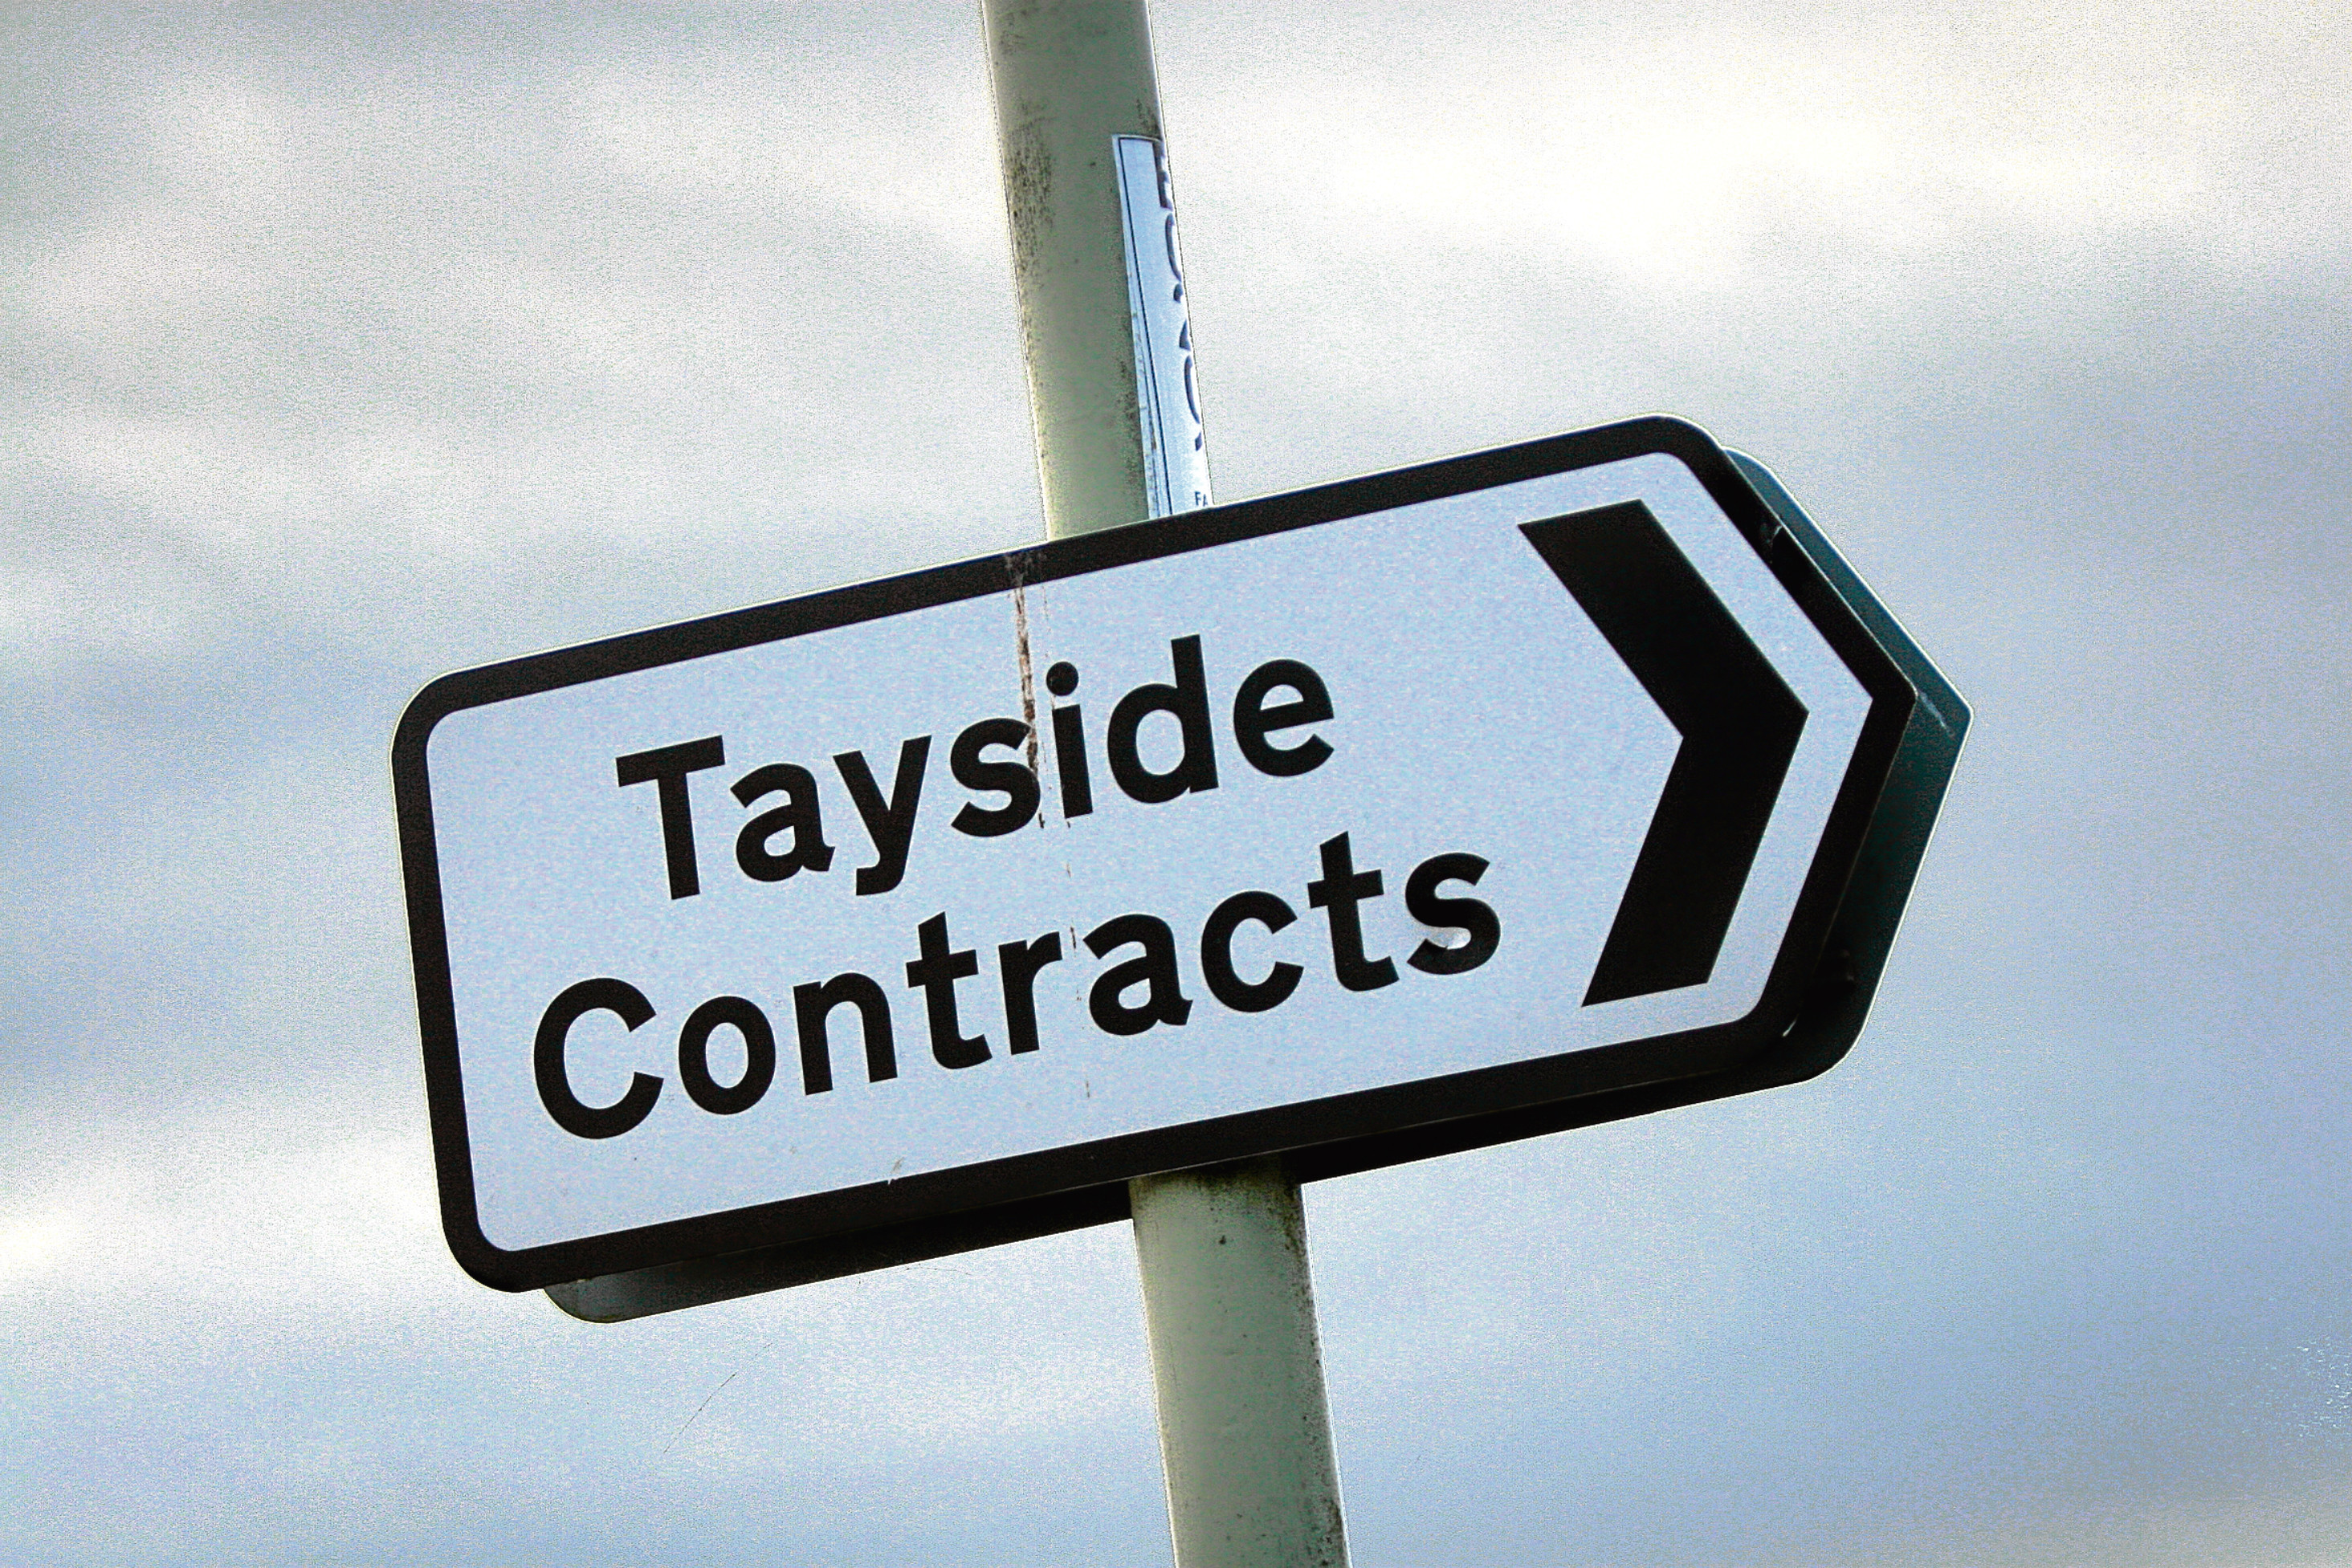 Kris Miller, Courier, 06/12/11. Picture today shows Tayside Contracts sign for file.